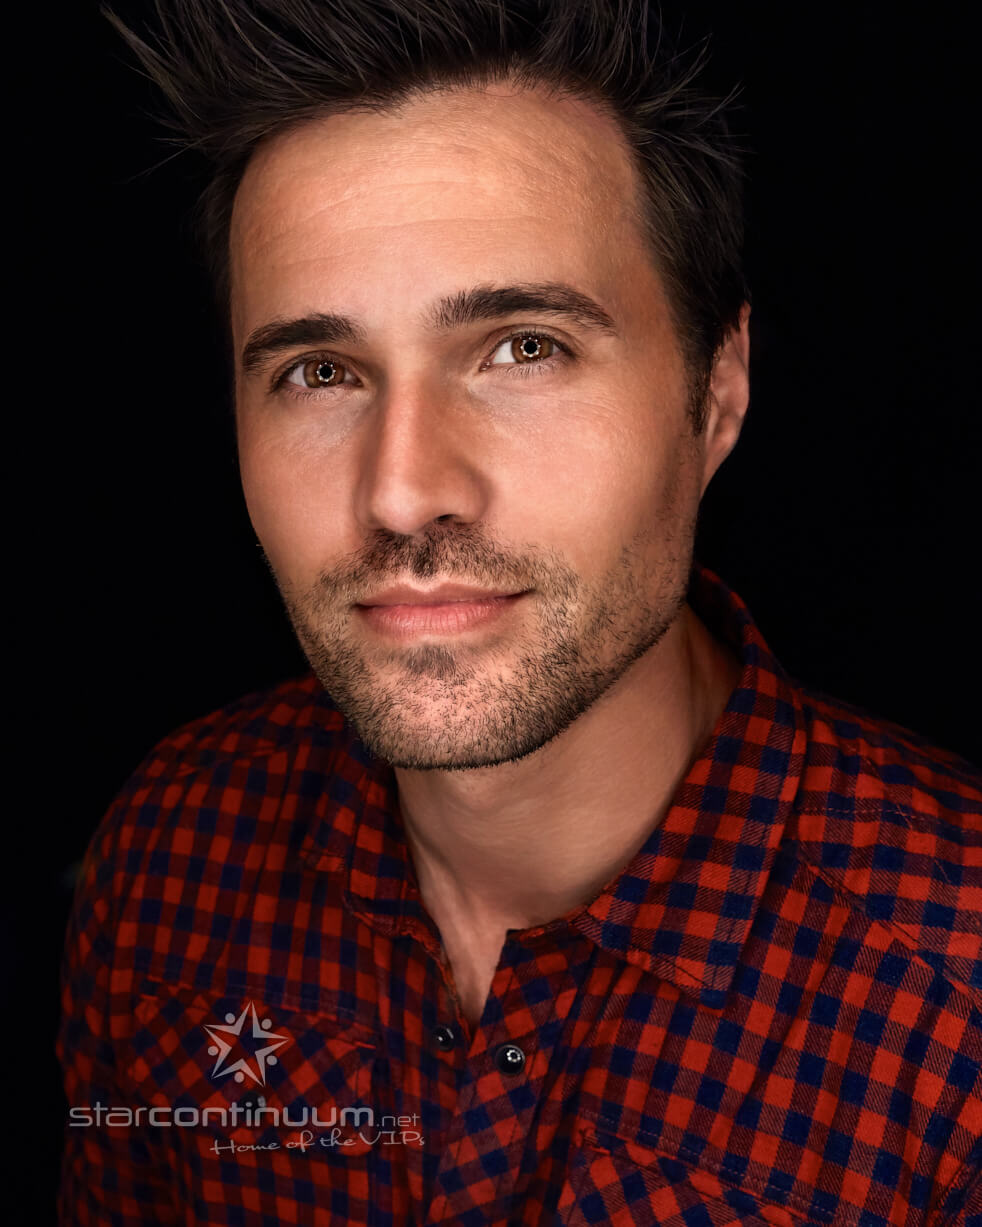 starcontinuum.net | Faces | Brett Dalton